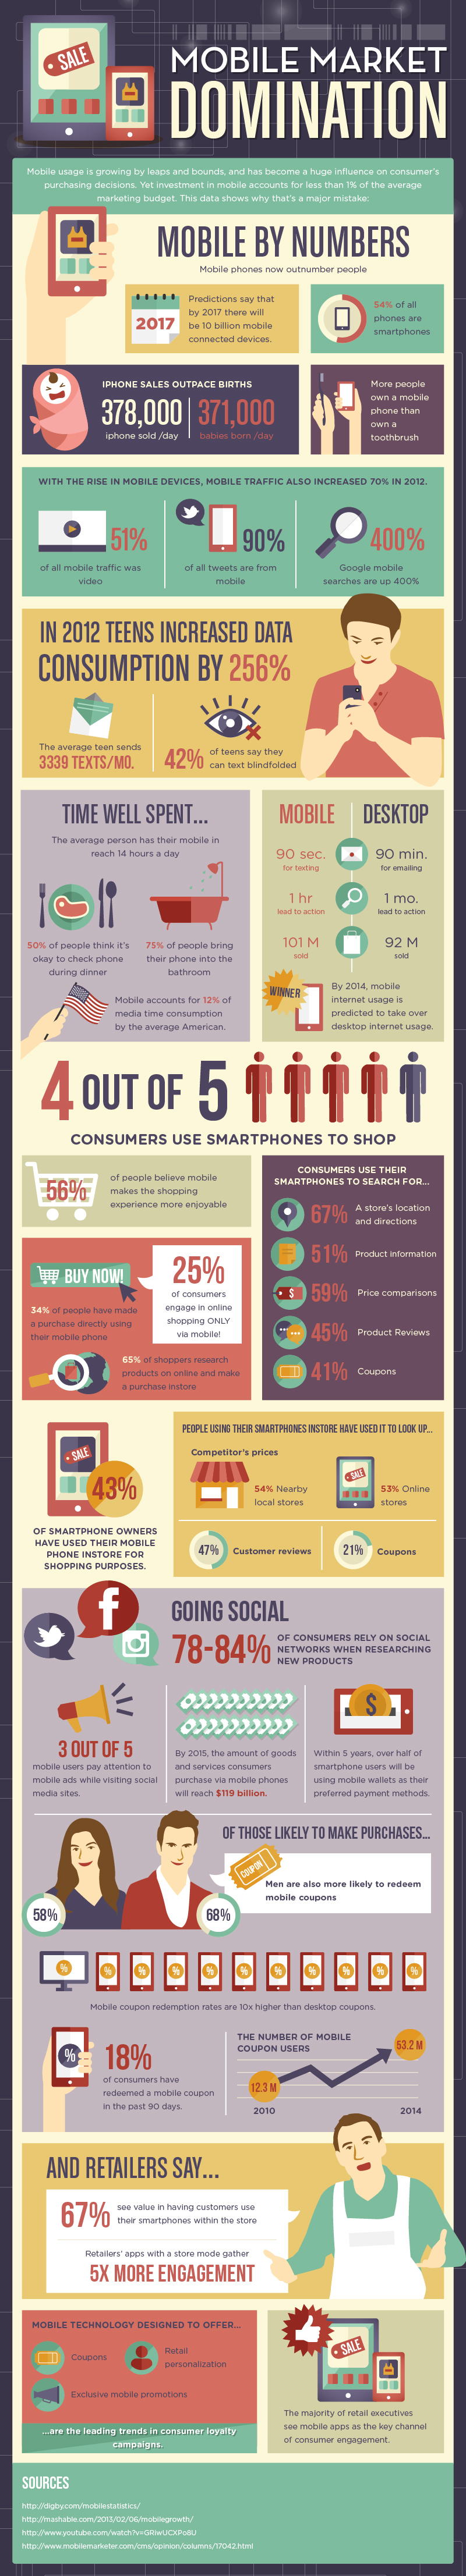 MobileMarketDomination-IG